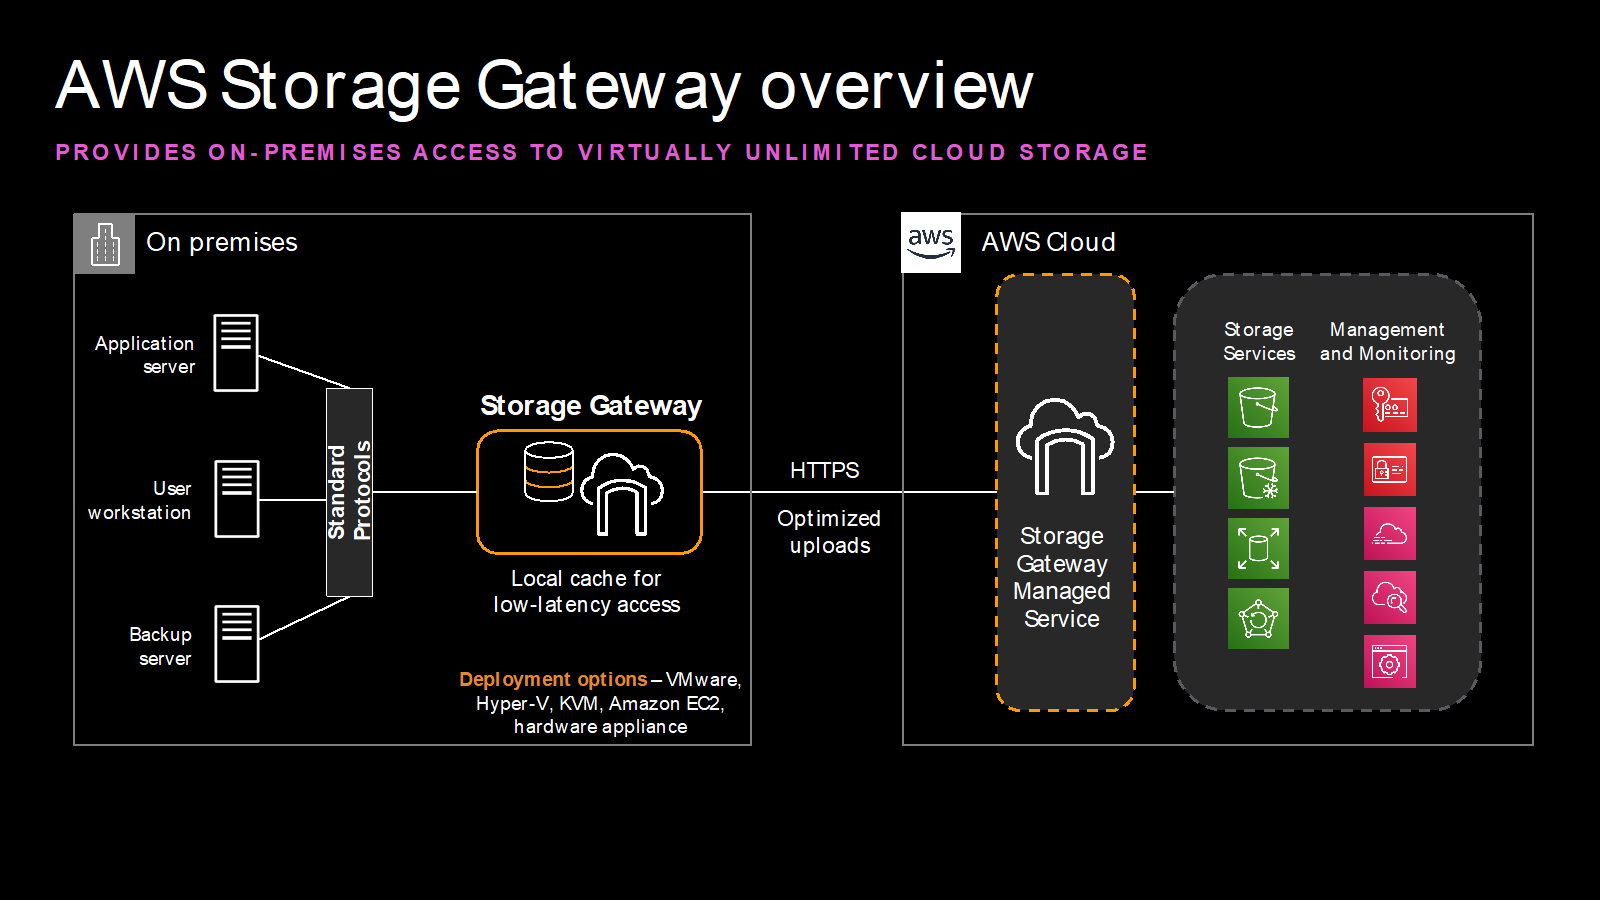 AWS Storage Gateway overview - Provides on-premises access to virtually unlimited cloud storage